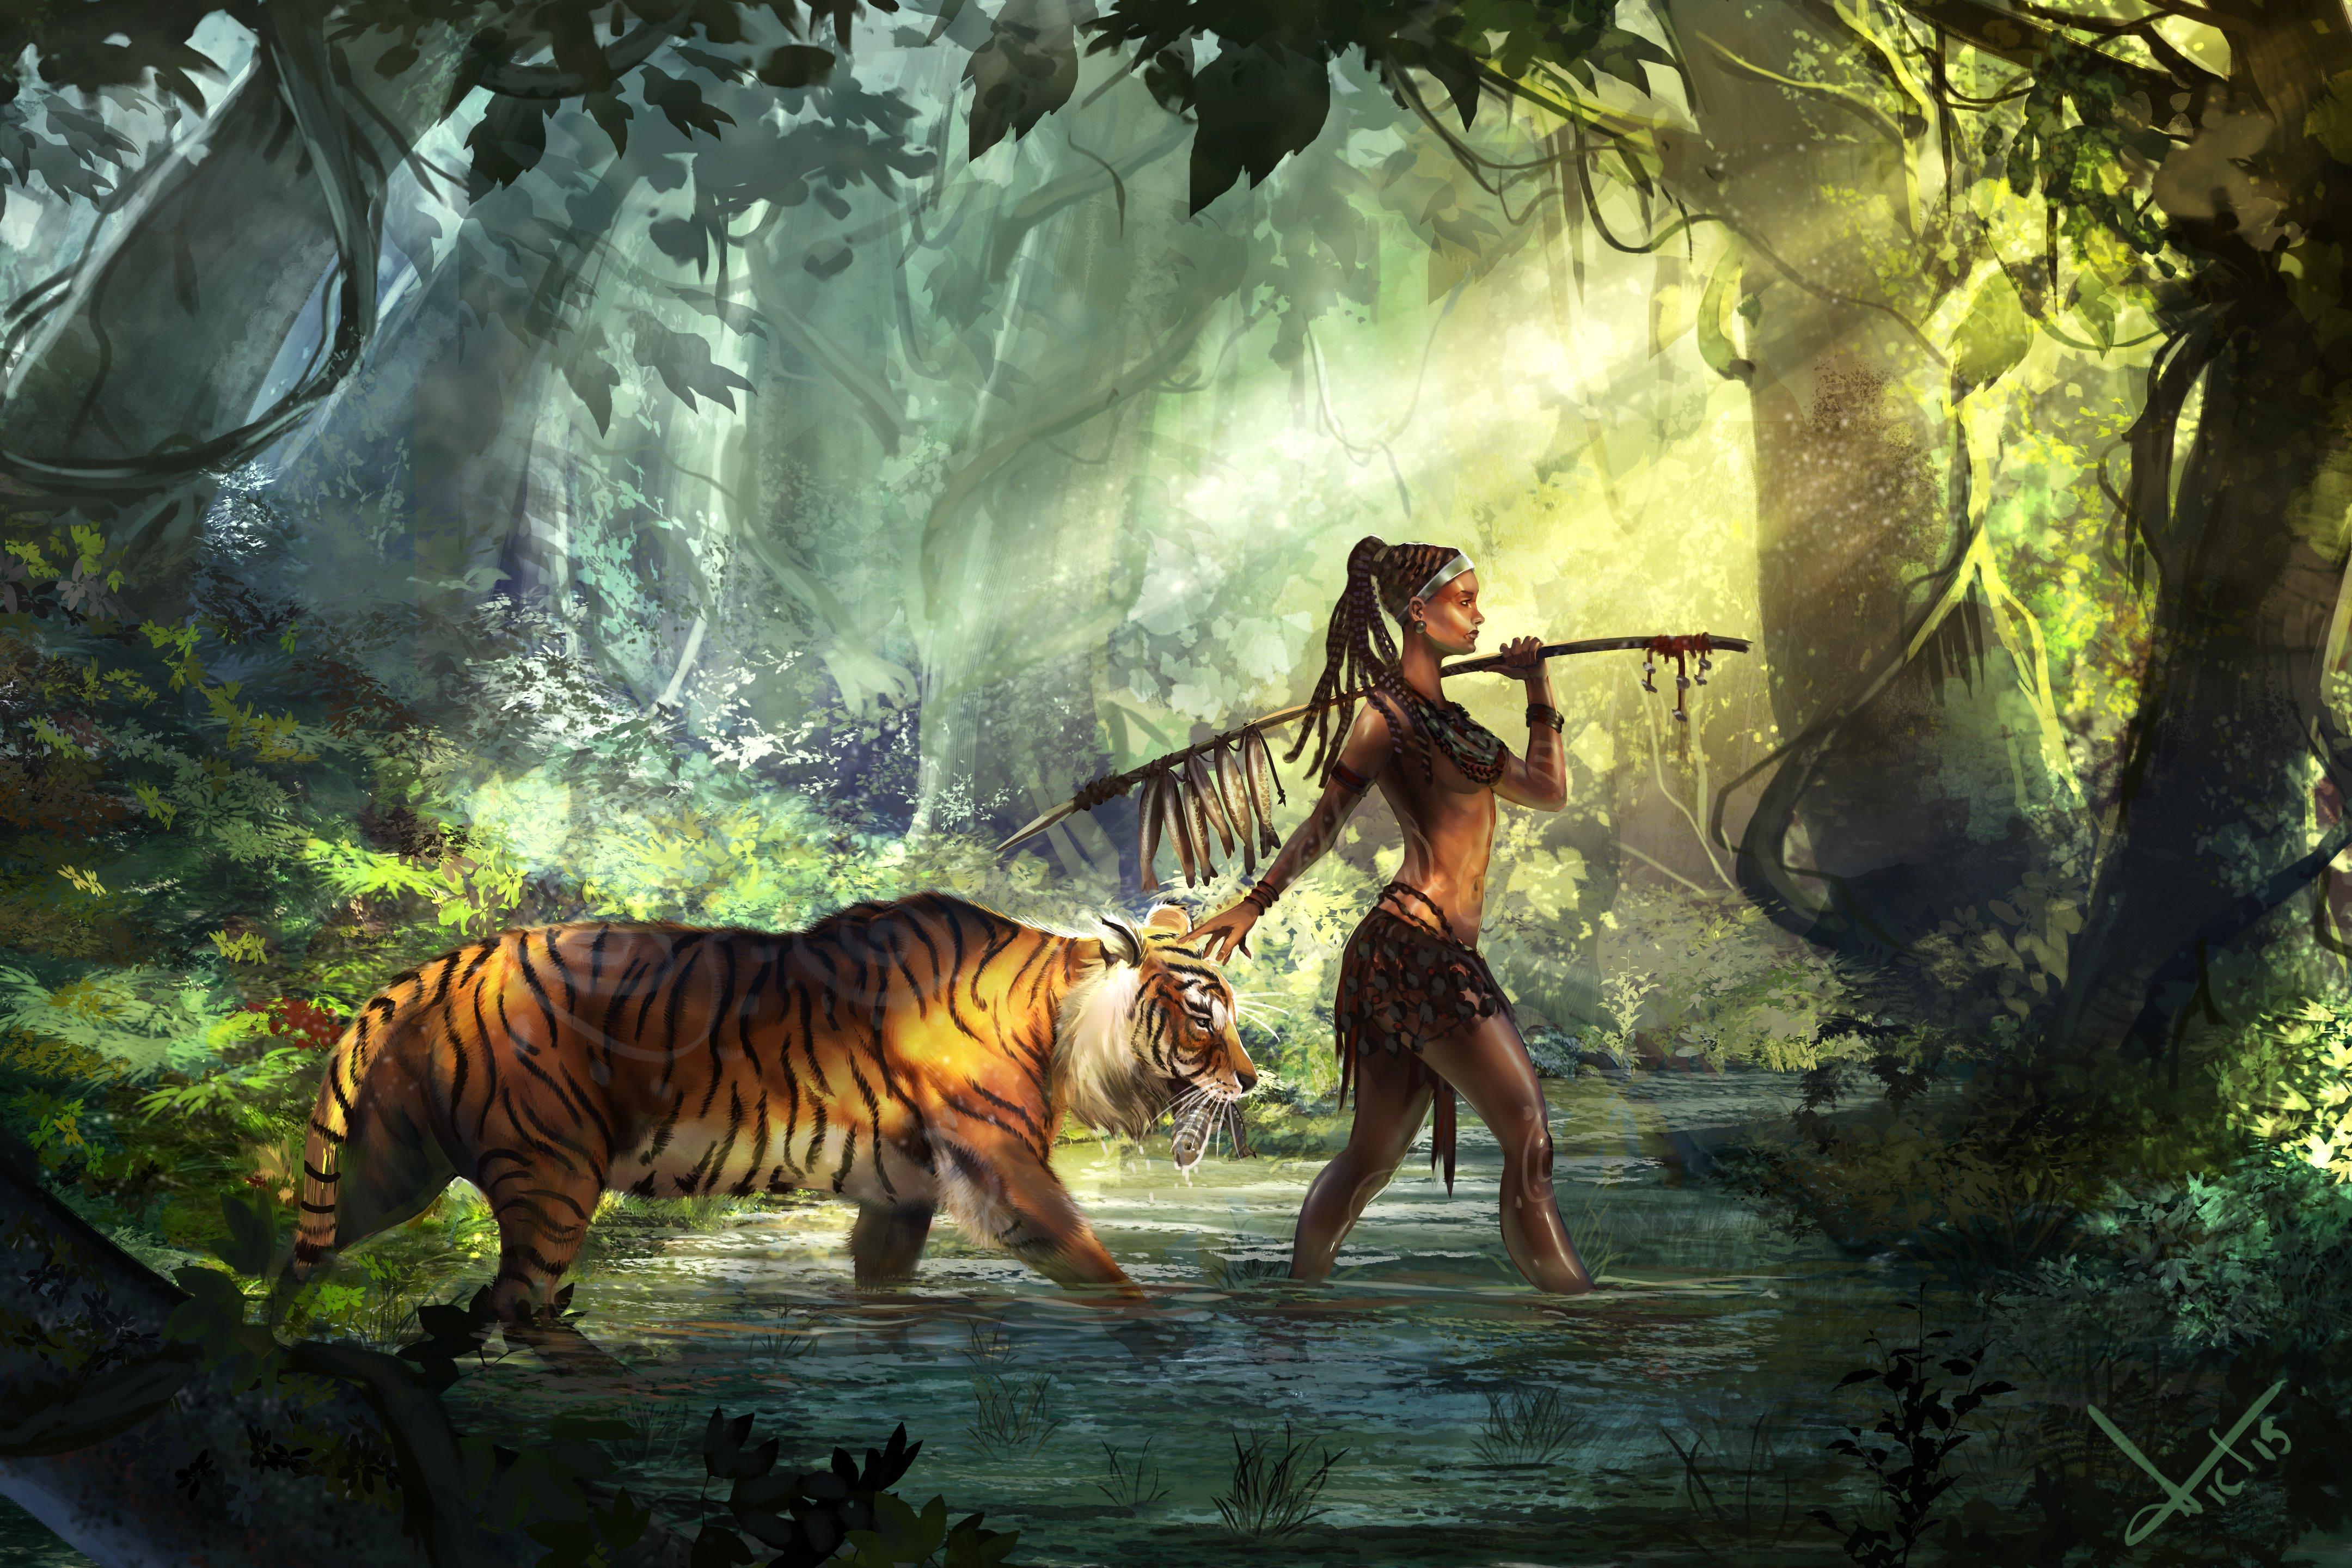 Women Warrior Fantasy Girl Art Artwork Girl Tiger Wallpaper